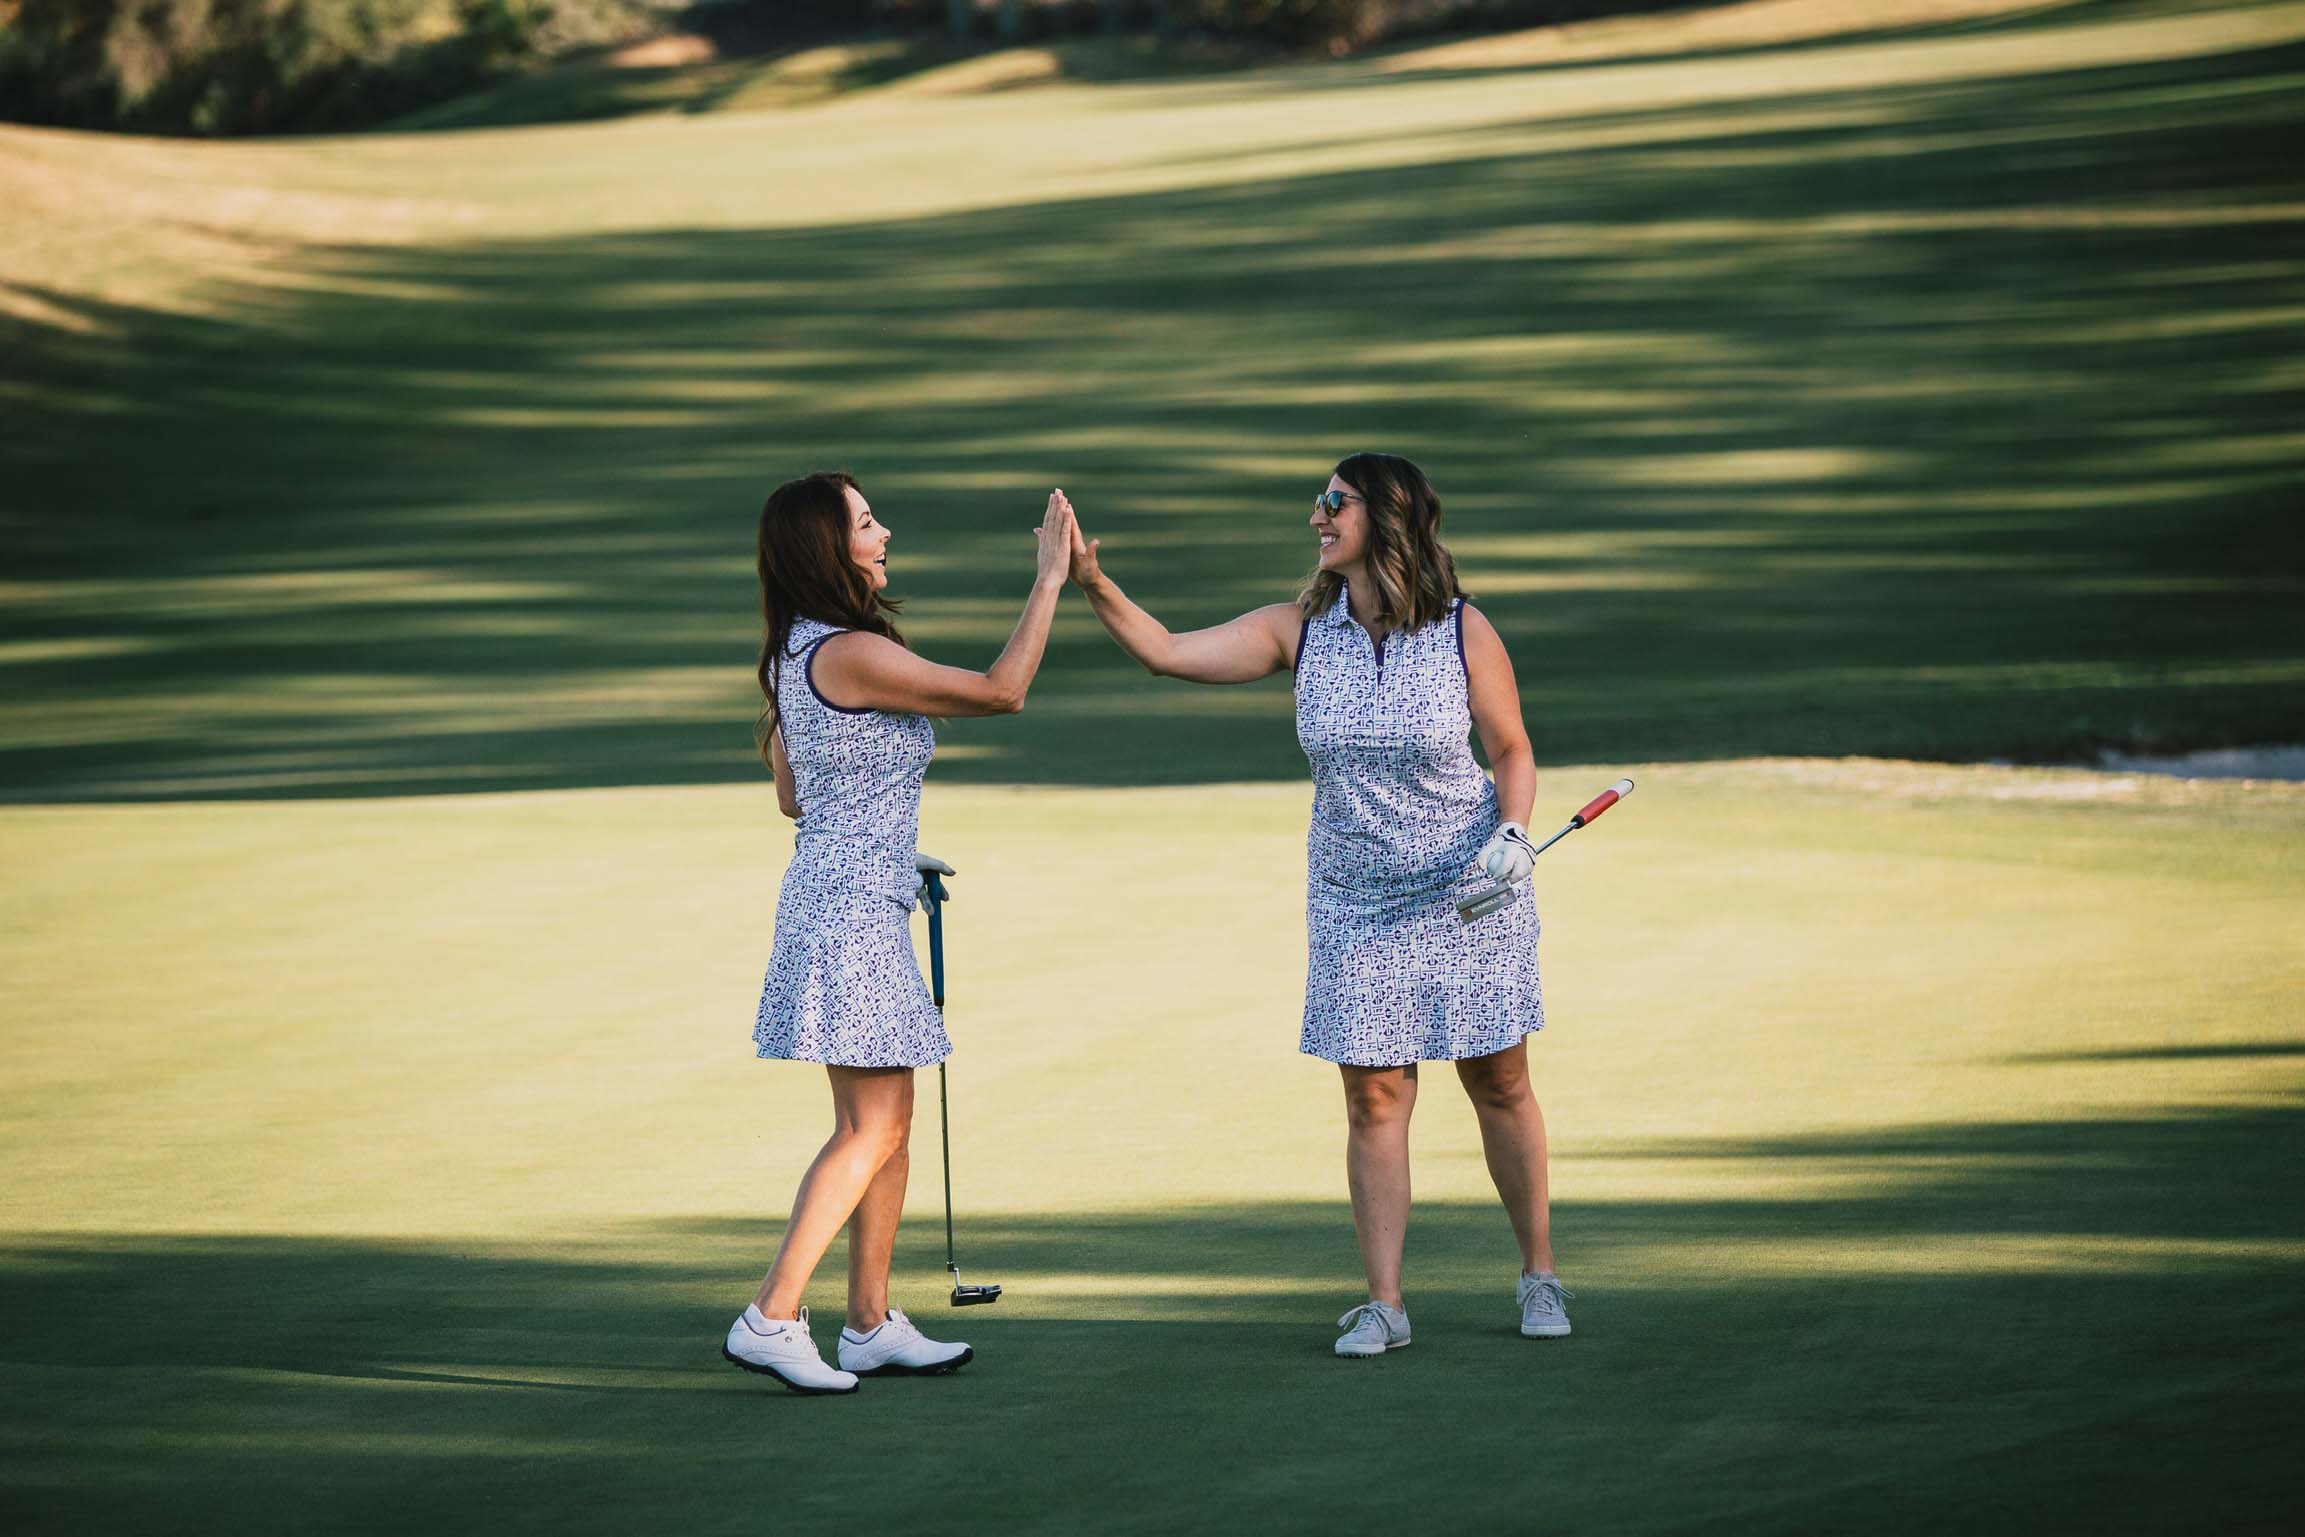 Marcela High Five on the Golf Course